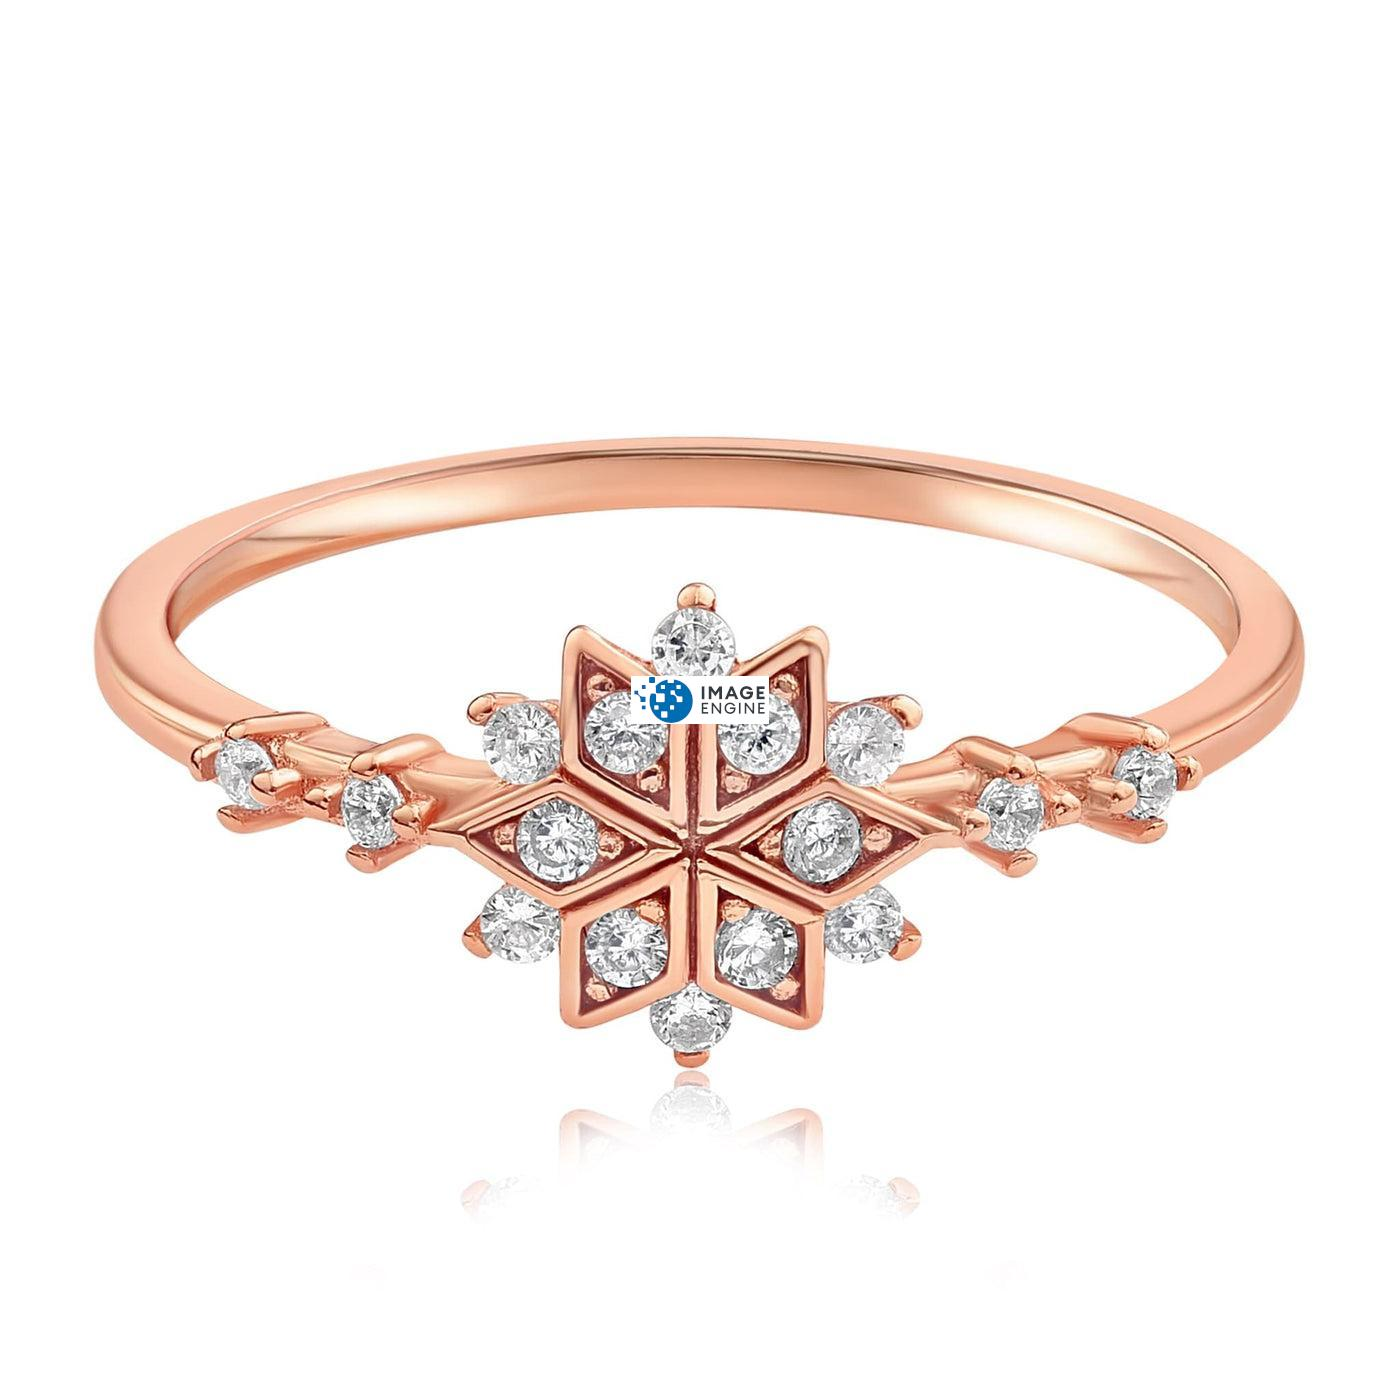 Sophia Snowflake Ring - Front View Facing Down - 18K Rose Gold Vermeil